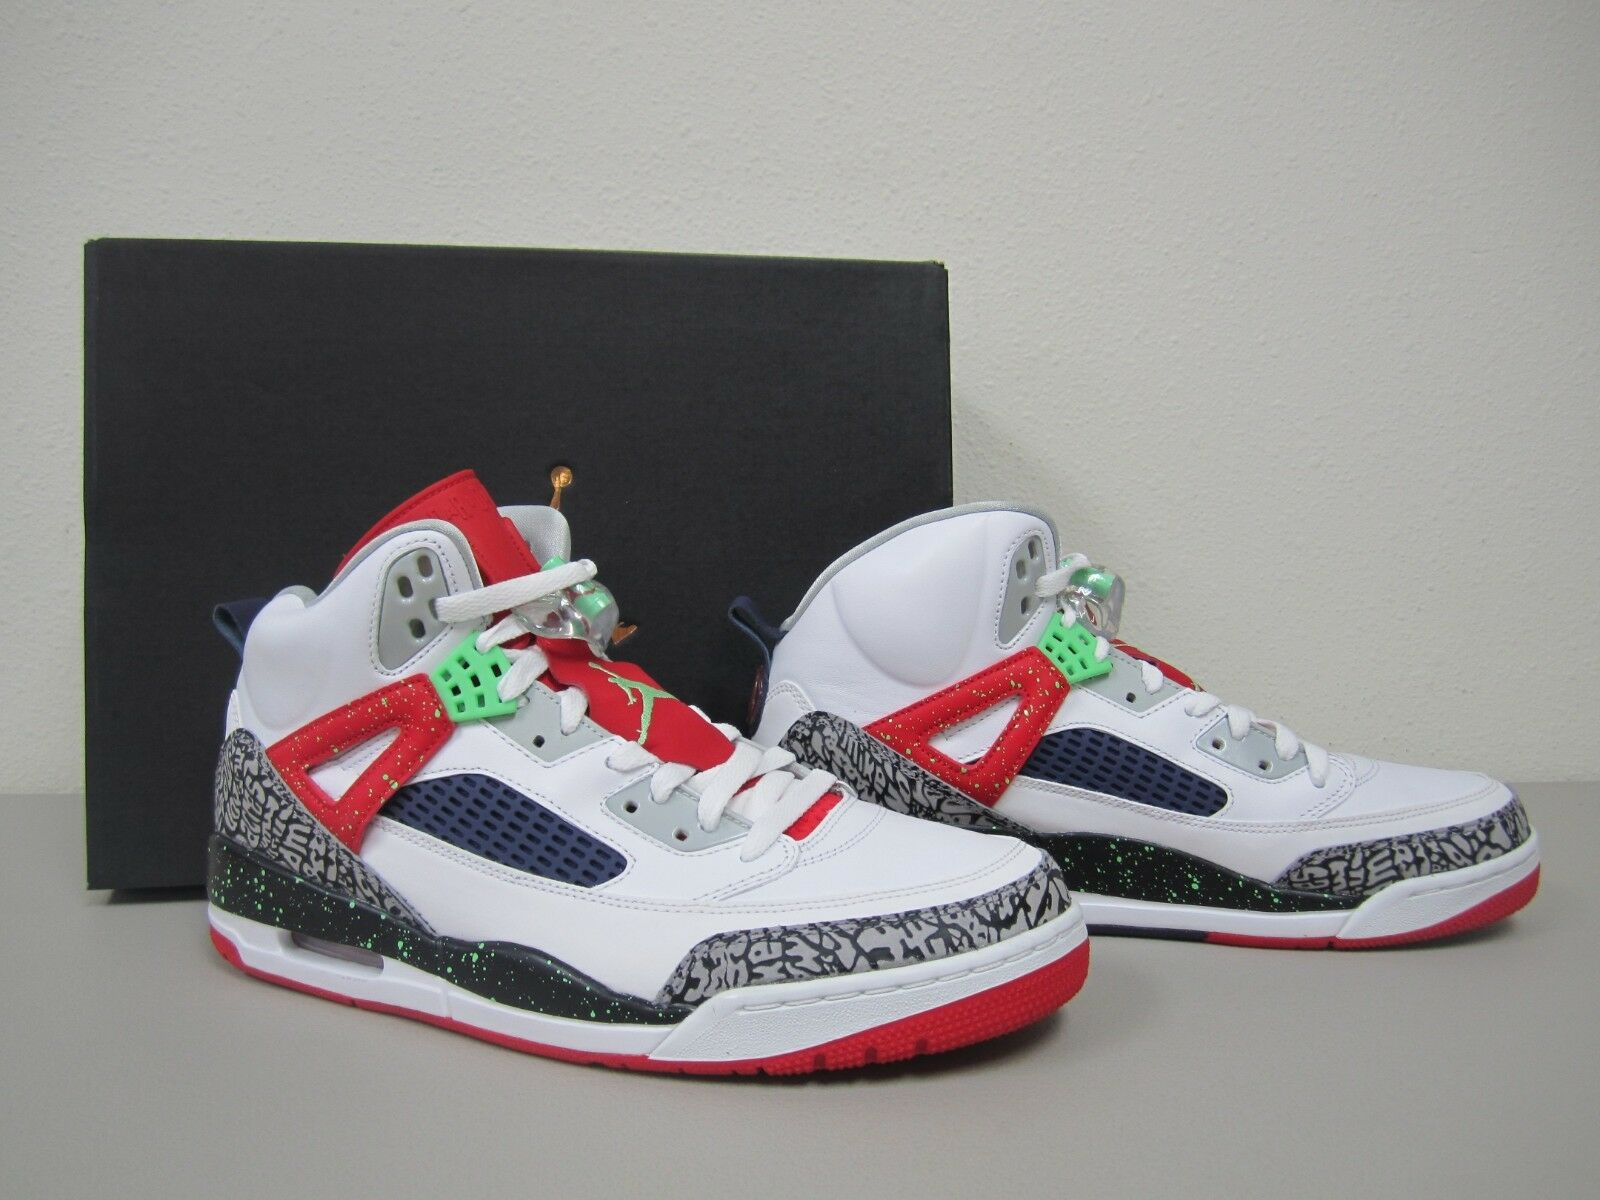 Nike air jordan spizike white poison green university red jpg 1600x1200 Jordan  spizike white 452248522